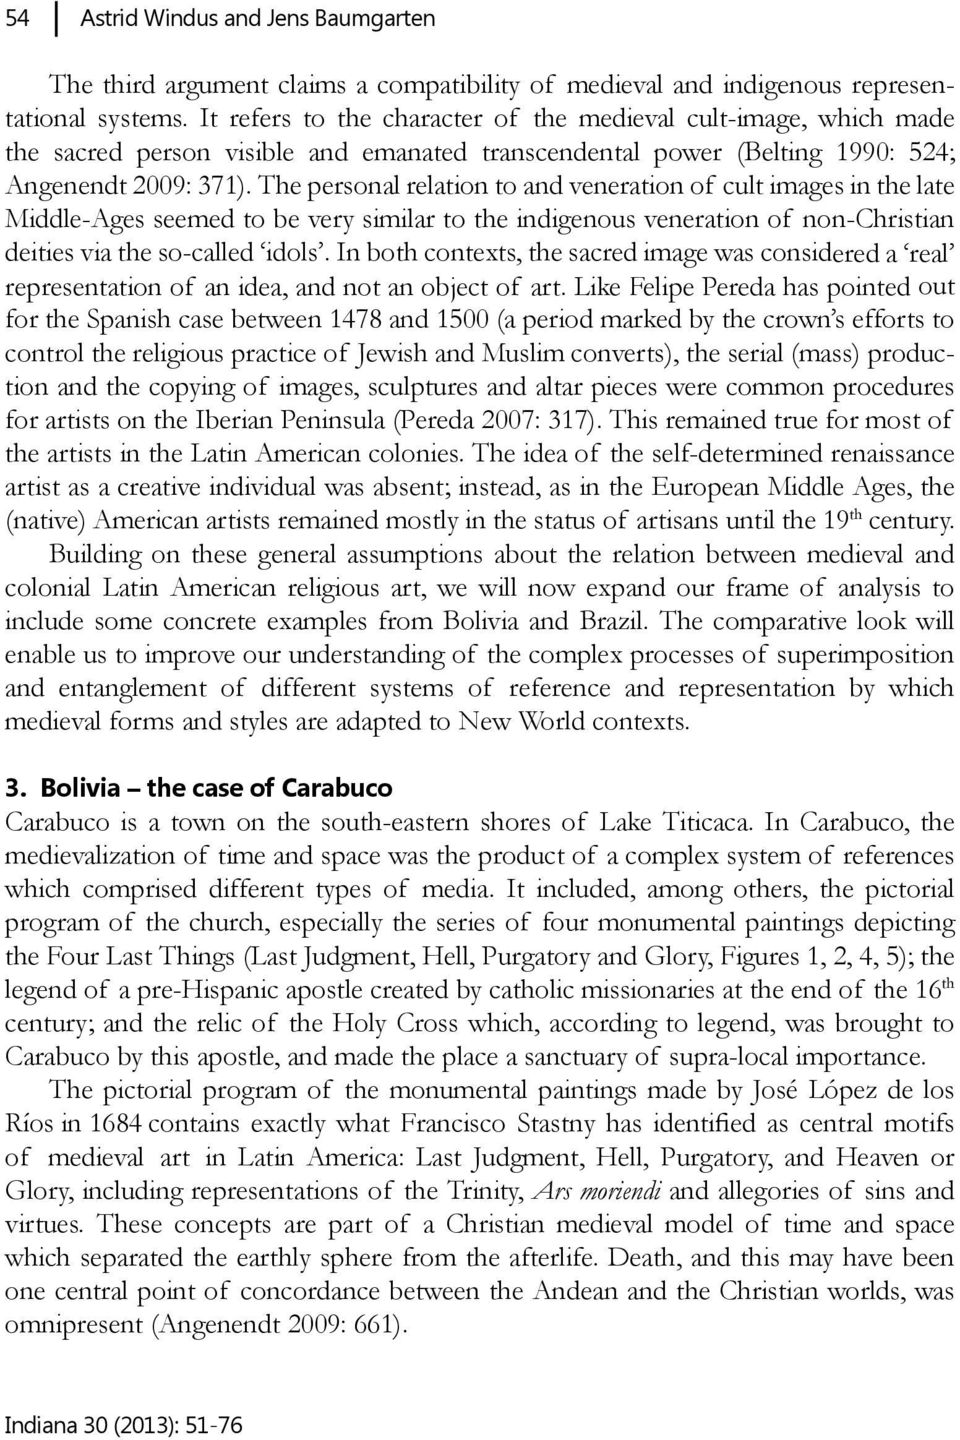 The personal relation to and veneration of cult images in the late Middle-Ages seemed to be very similar to the indigenous veneration of non-christian deities via the so-called idols.